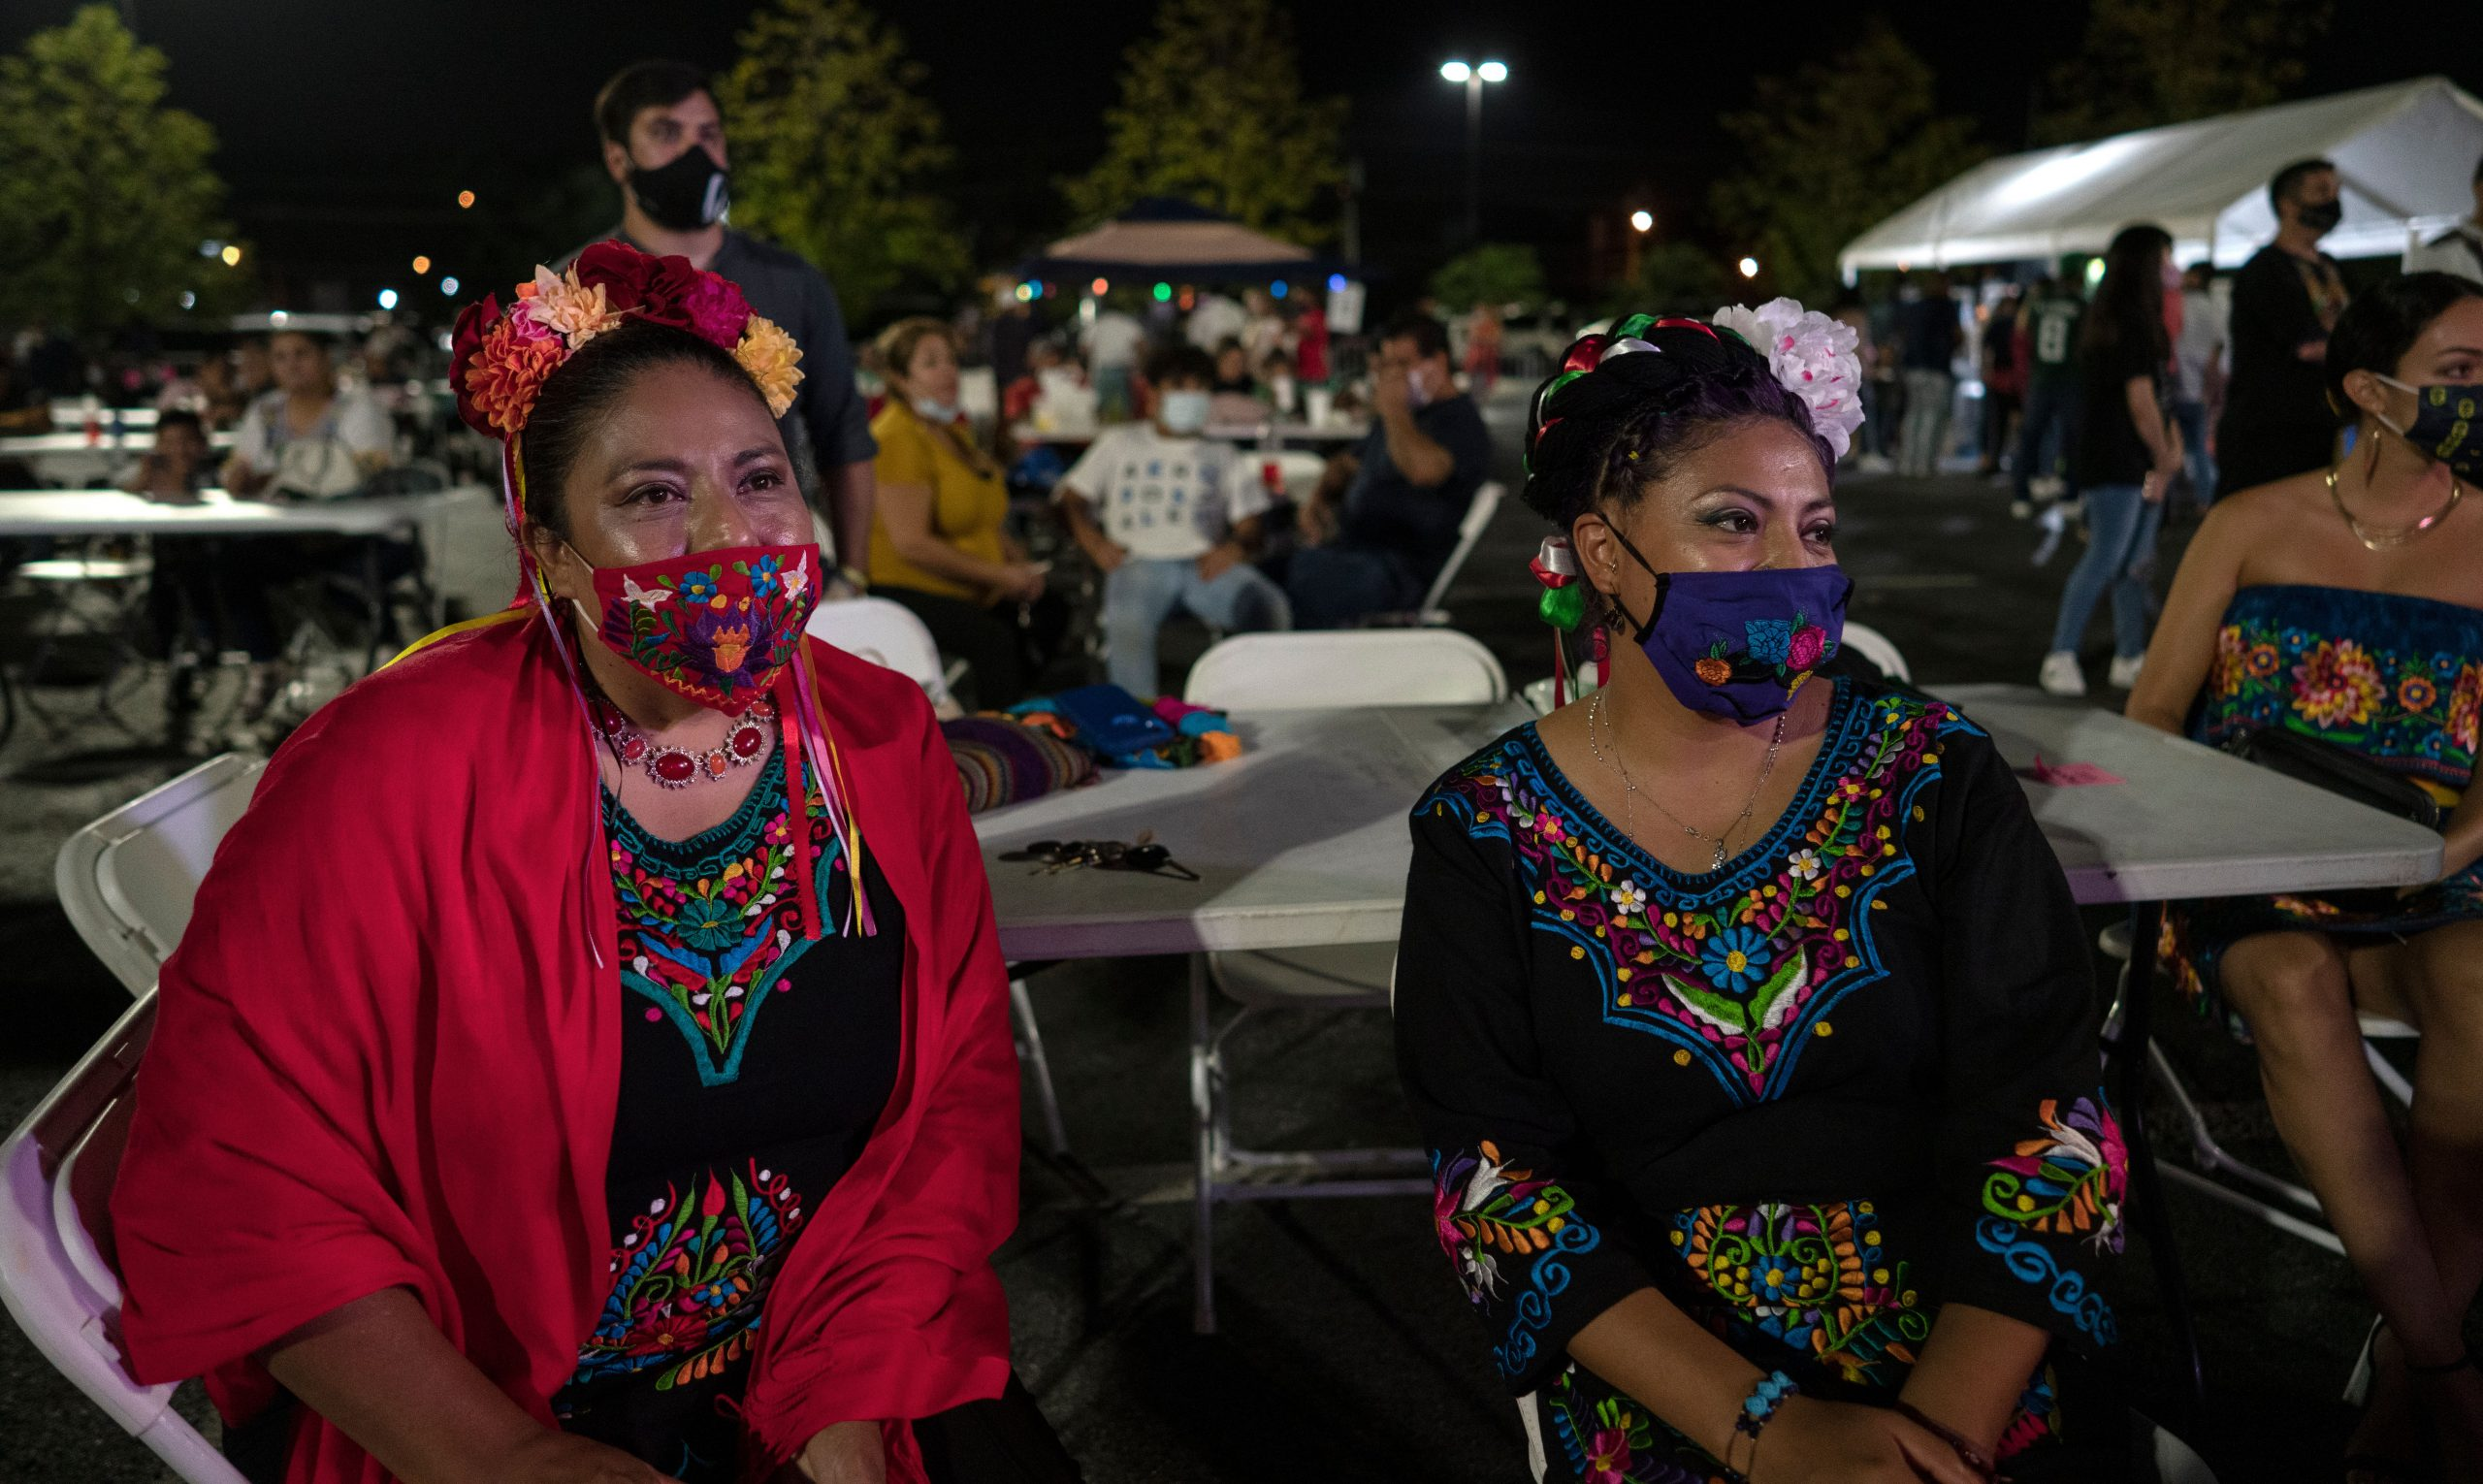 From left, Maria Lopez and Maria Rodriguez dress in traditional dress while attending Mexican independence day at Plaza Mariachi. (Photo: John Partipilo)